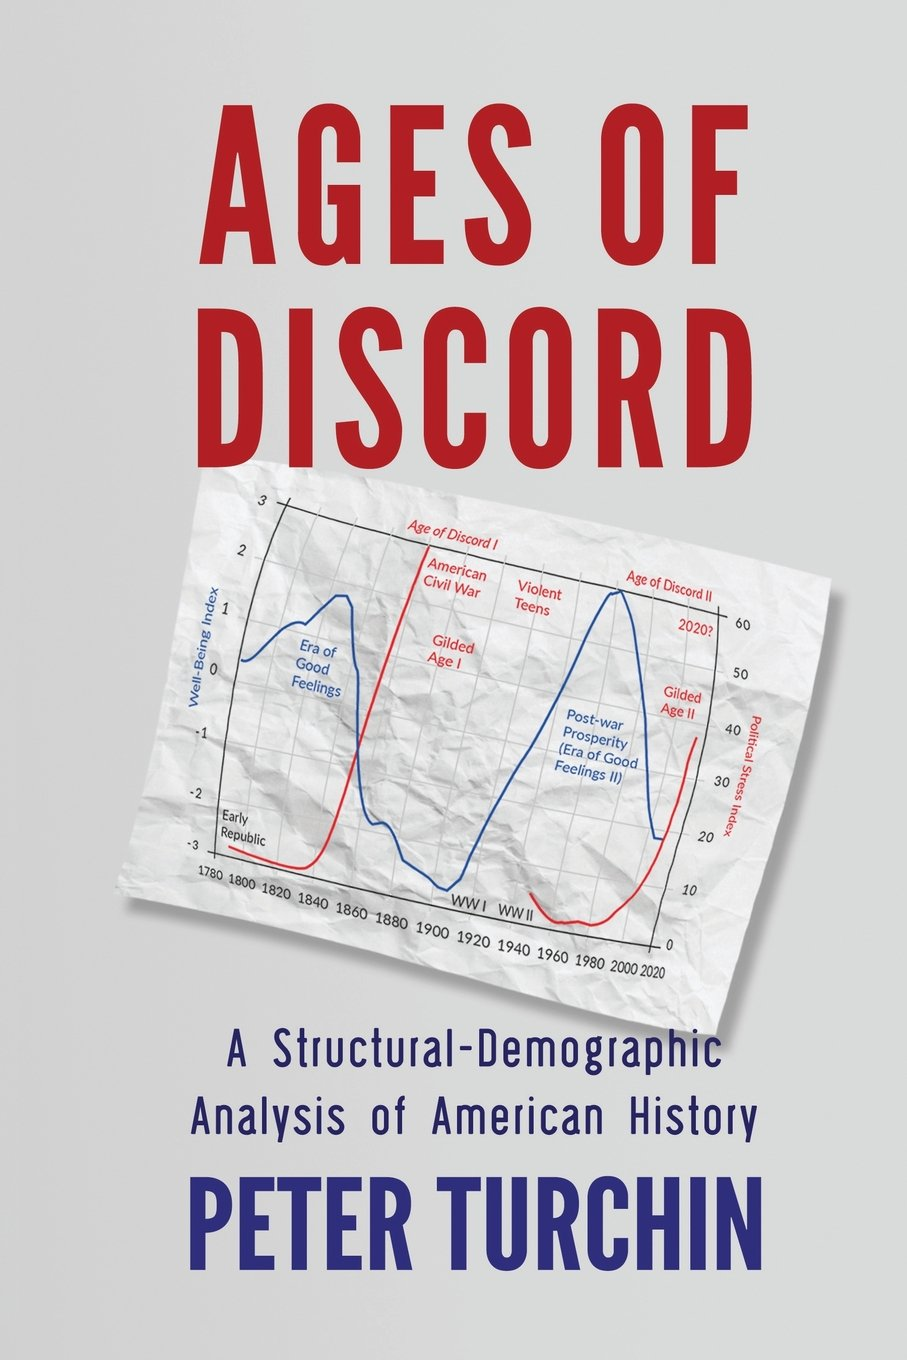 Ages of Discord: Peter Turchin: 9780996139540: Amazon com: Books